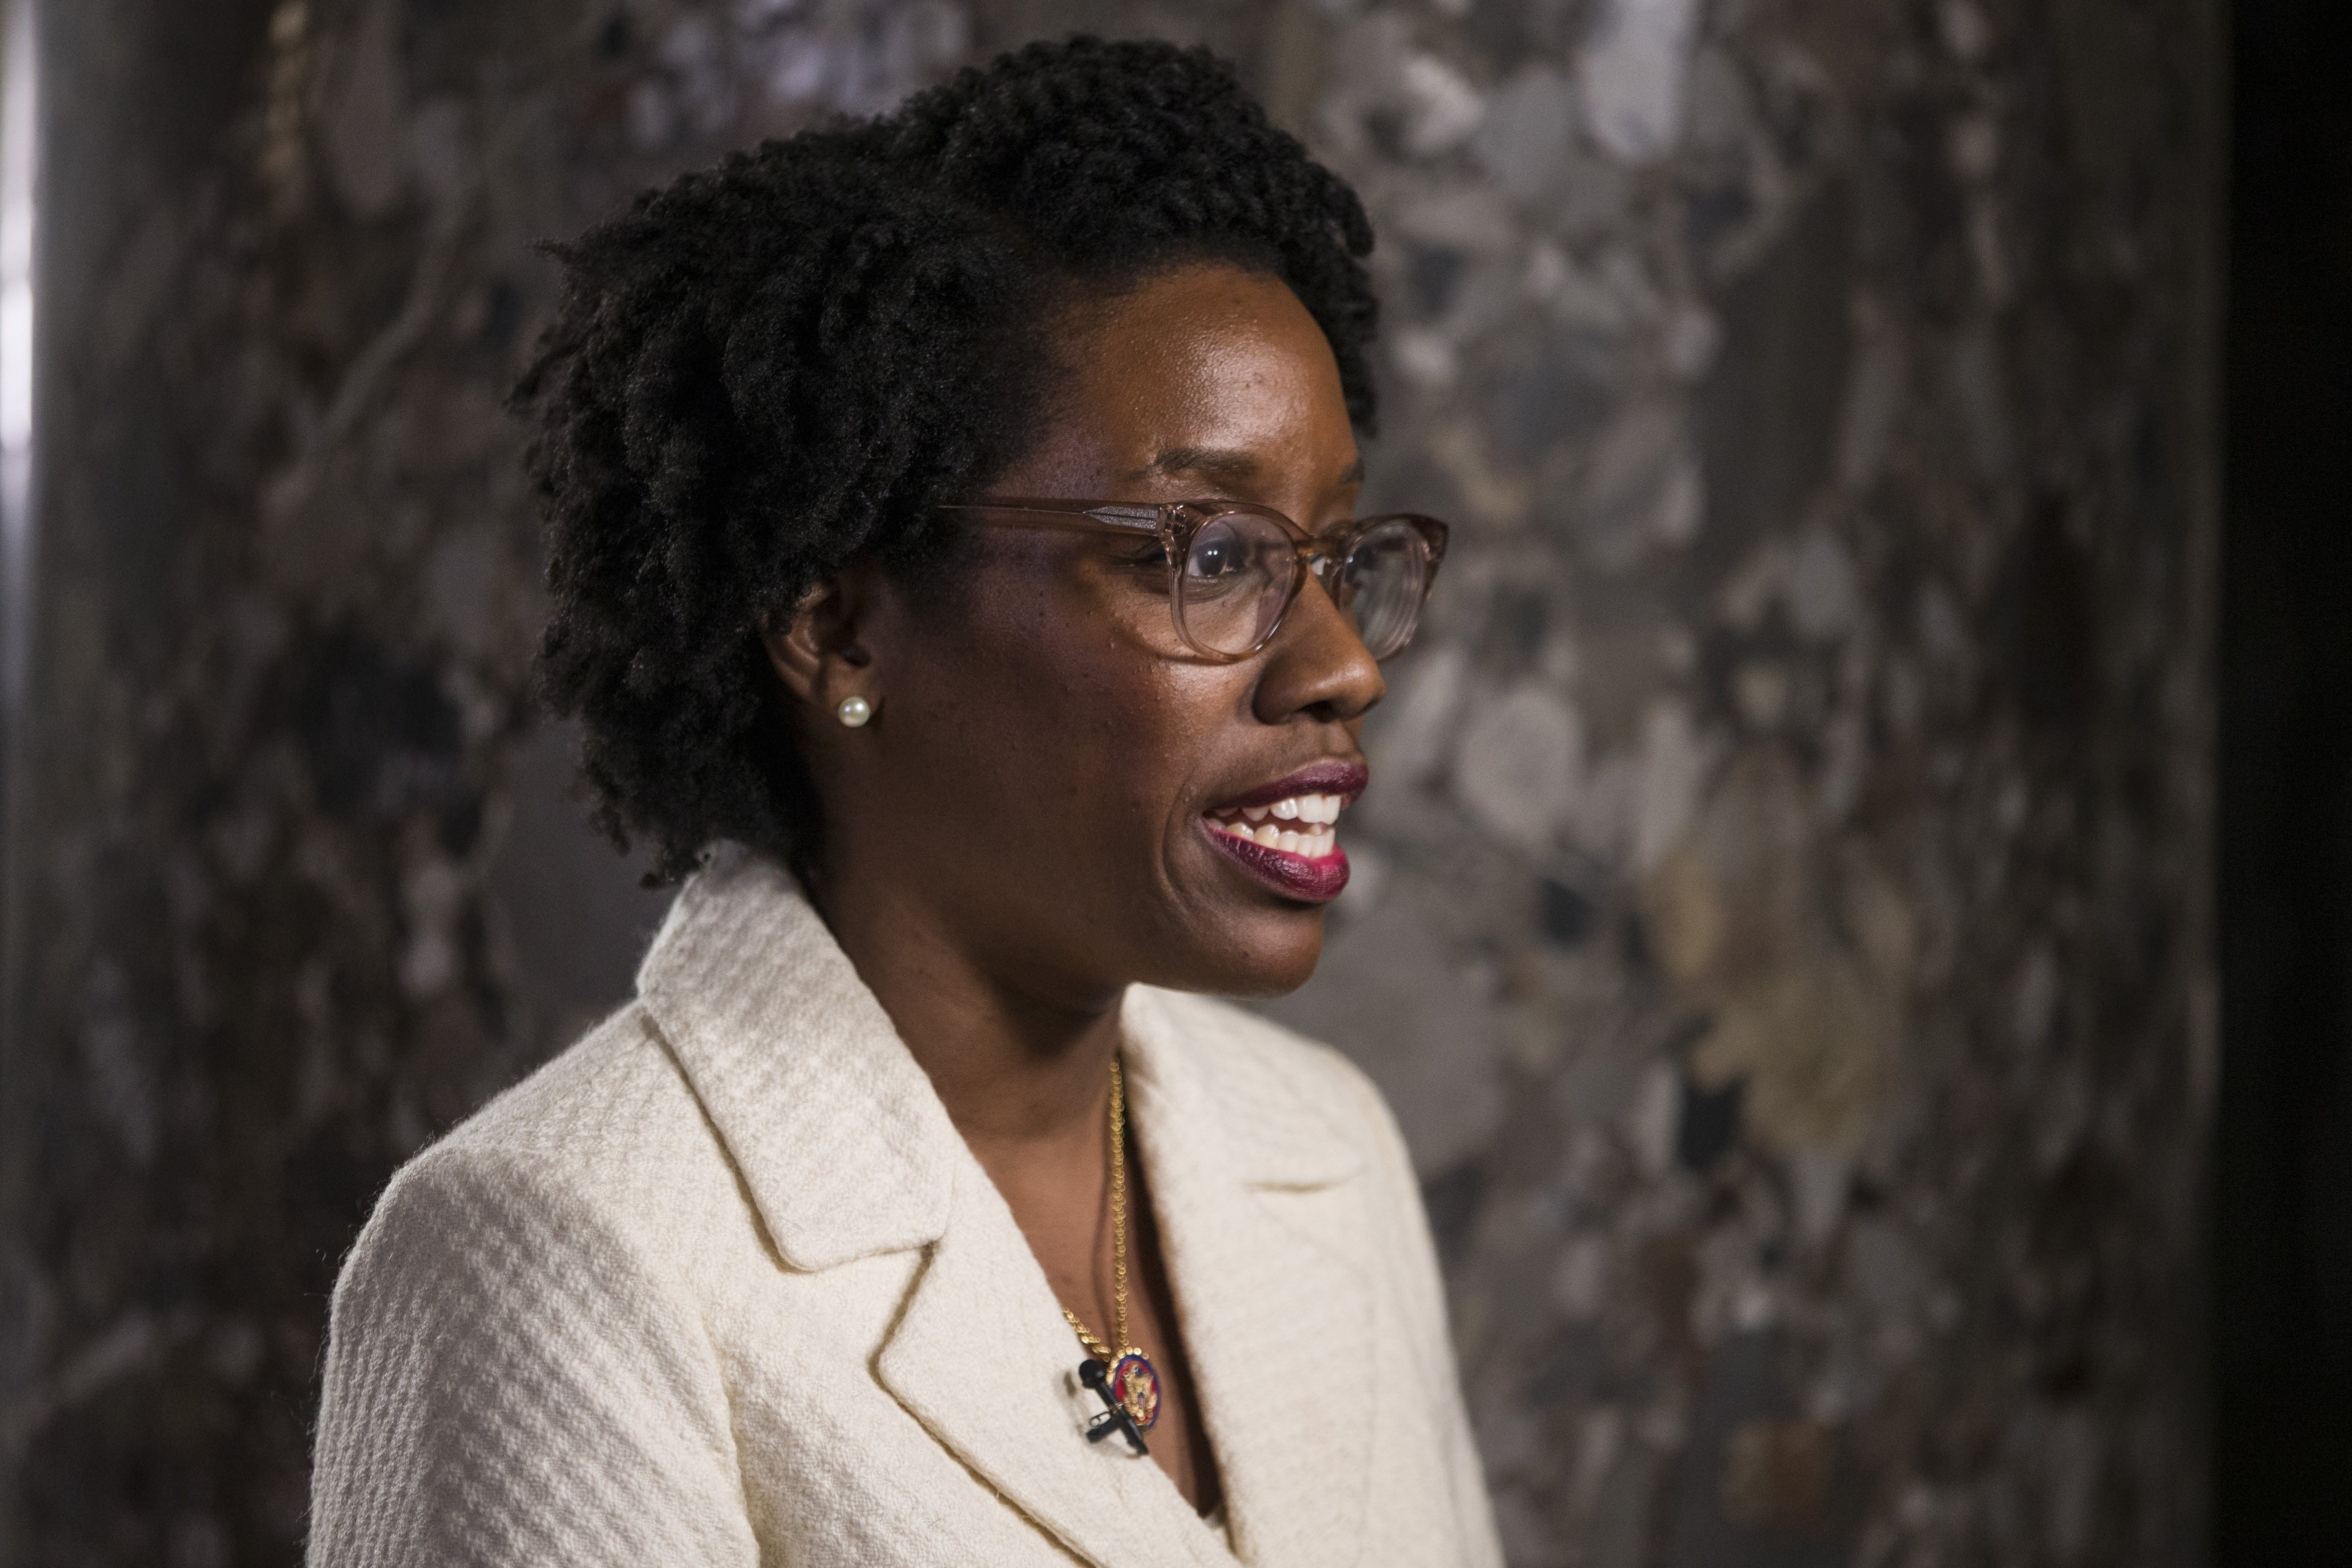 WASHINGTON, DC - FEBRUARY 05: Rep. Lauren Underwood (D-IL) speaks to members of the press ahead of the State of the Union address in the chamber of the U.S. House of Representatives at the U.S. Capitol Building on February 5, 2019 in Washington, DC. President Trump's second State of the Union address was postponed one week due to the partial government shutdown.  (Photo by Zach Gibson/Getty Images)